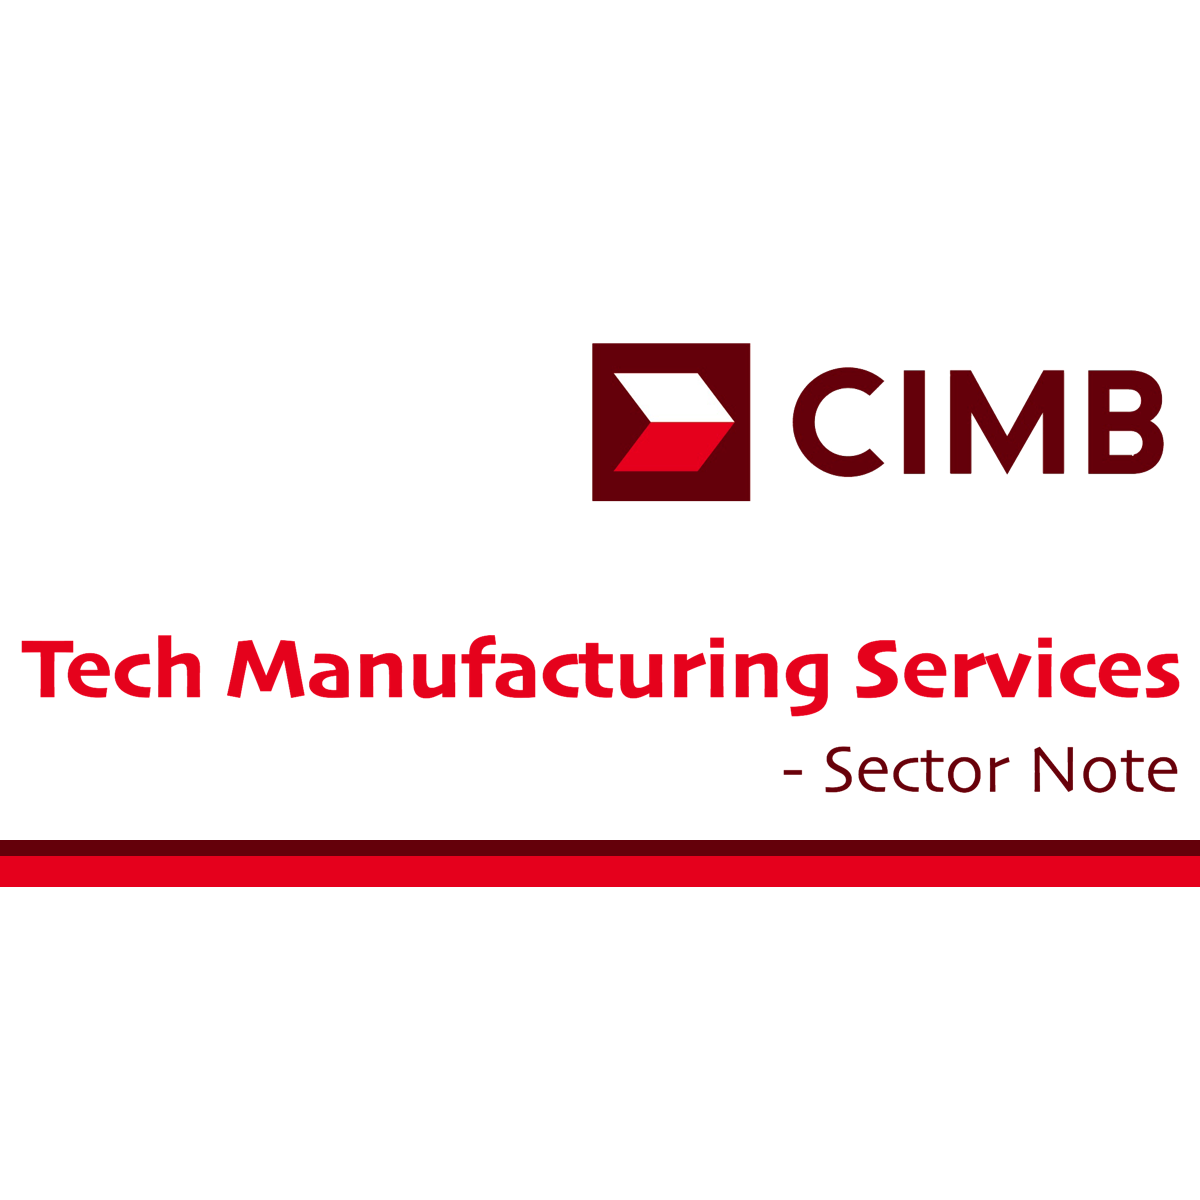 Tech Manufacturing Services - CIMB Research 2016-11-21: Breathing life